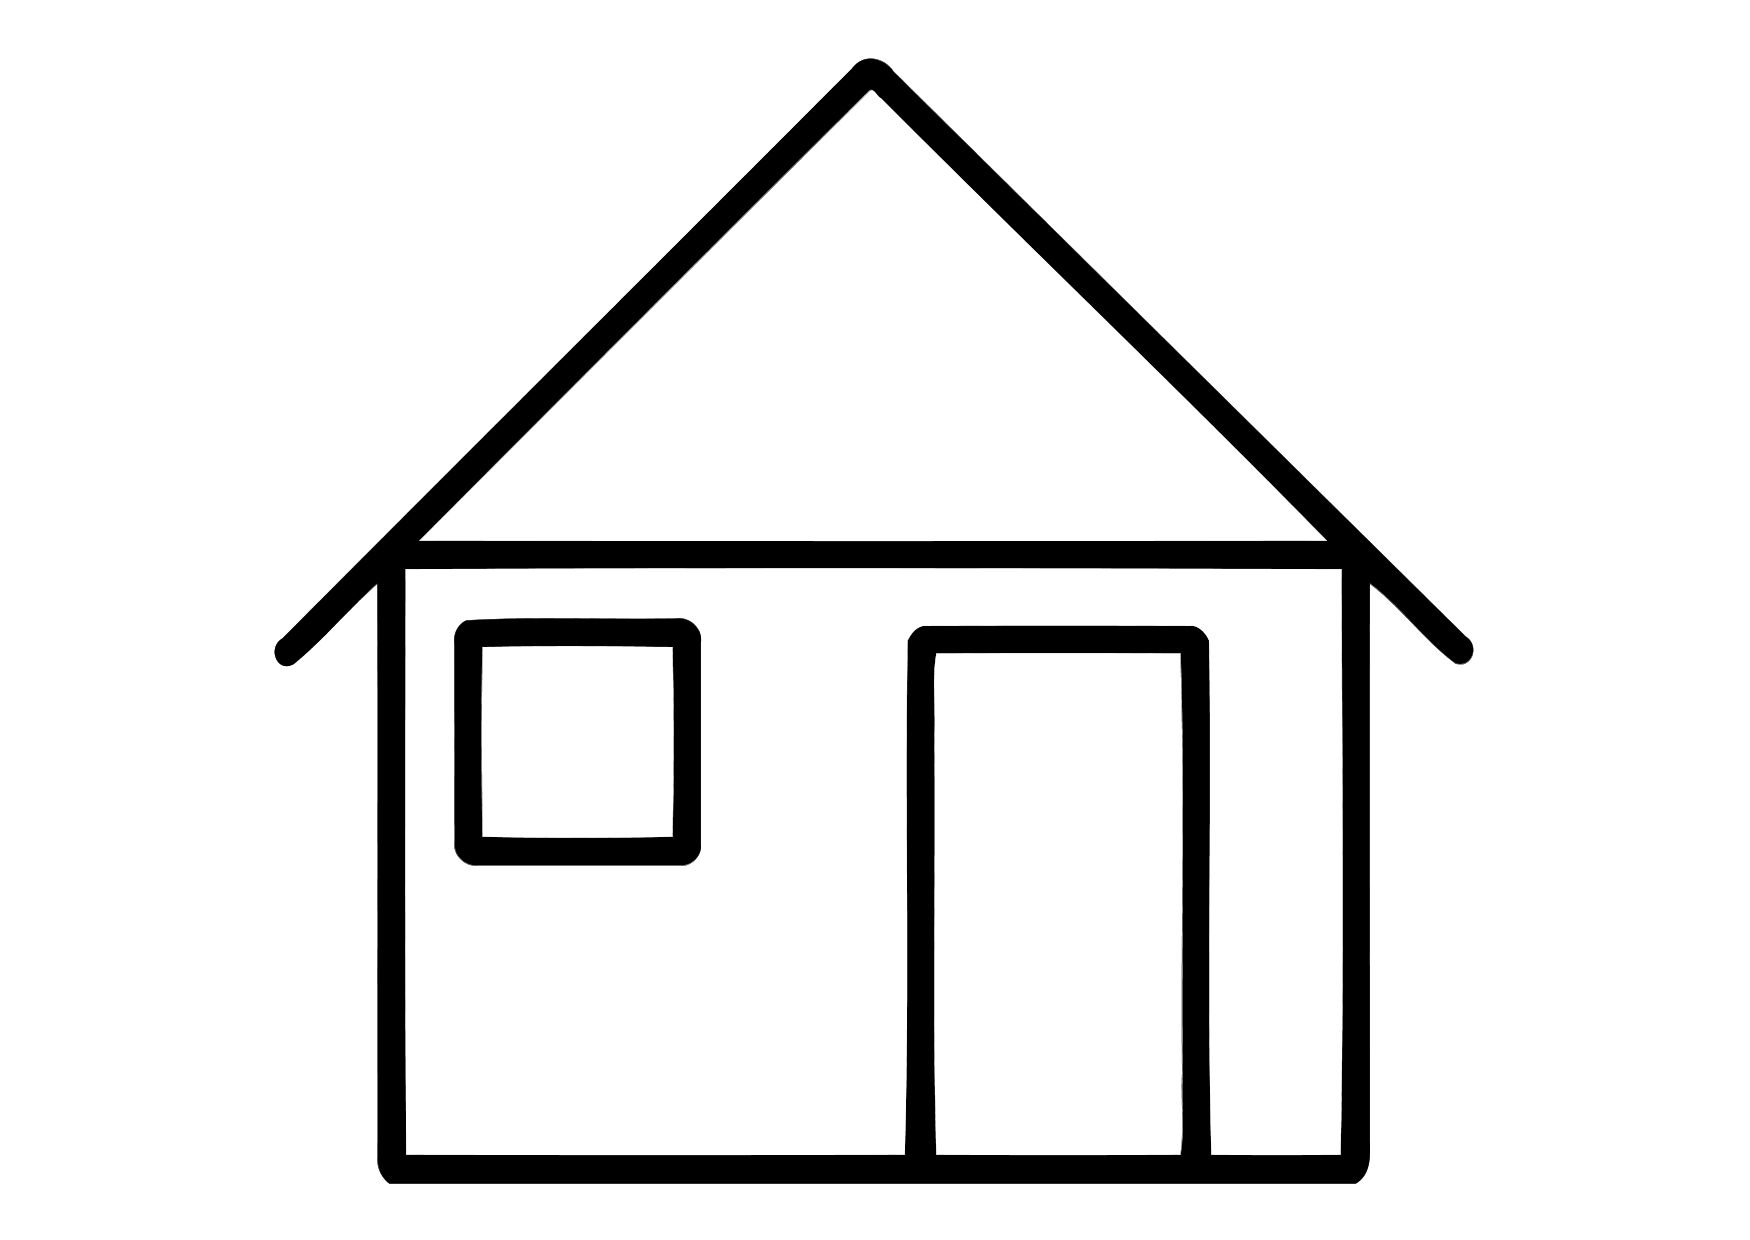 coloring house pictures free printable house coloring pages for kids pictures house coloring